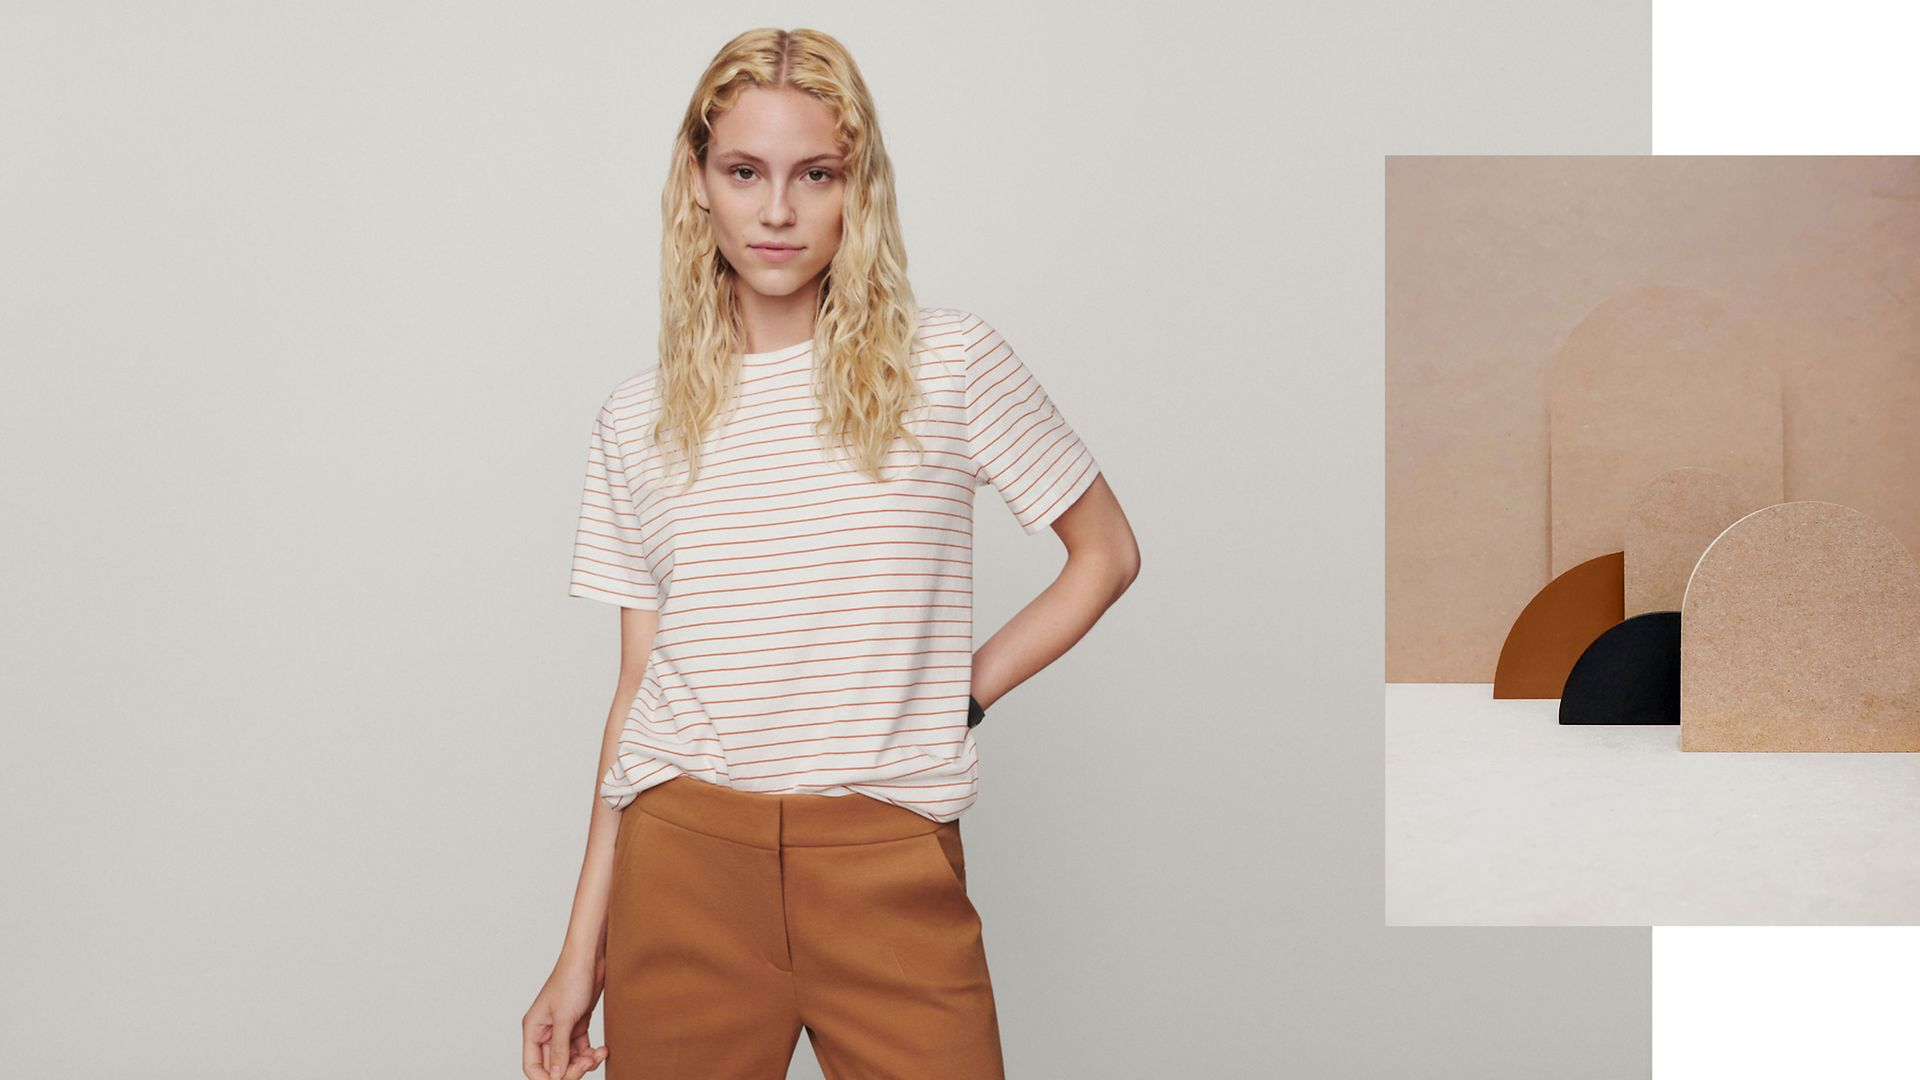 072021 - Women - Inspiration - Lookbook - Simply perfect trousers - Hero Large 2 IMG